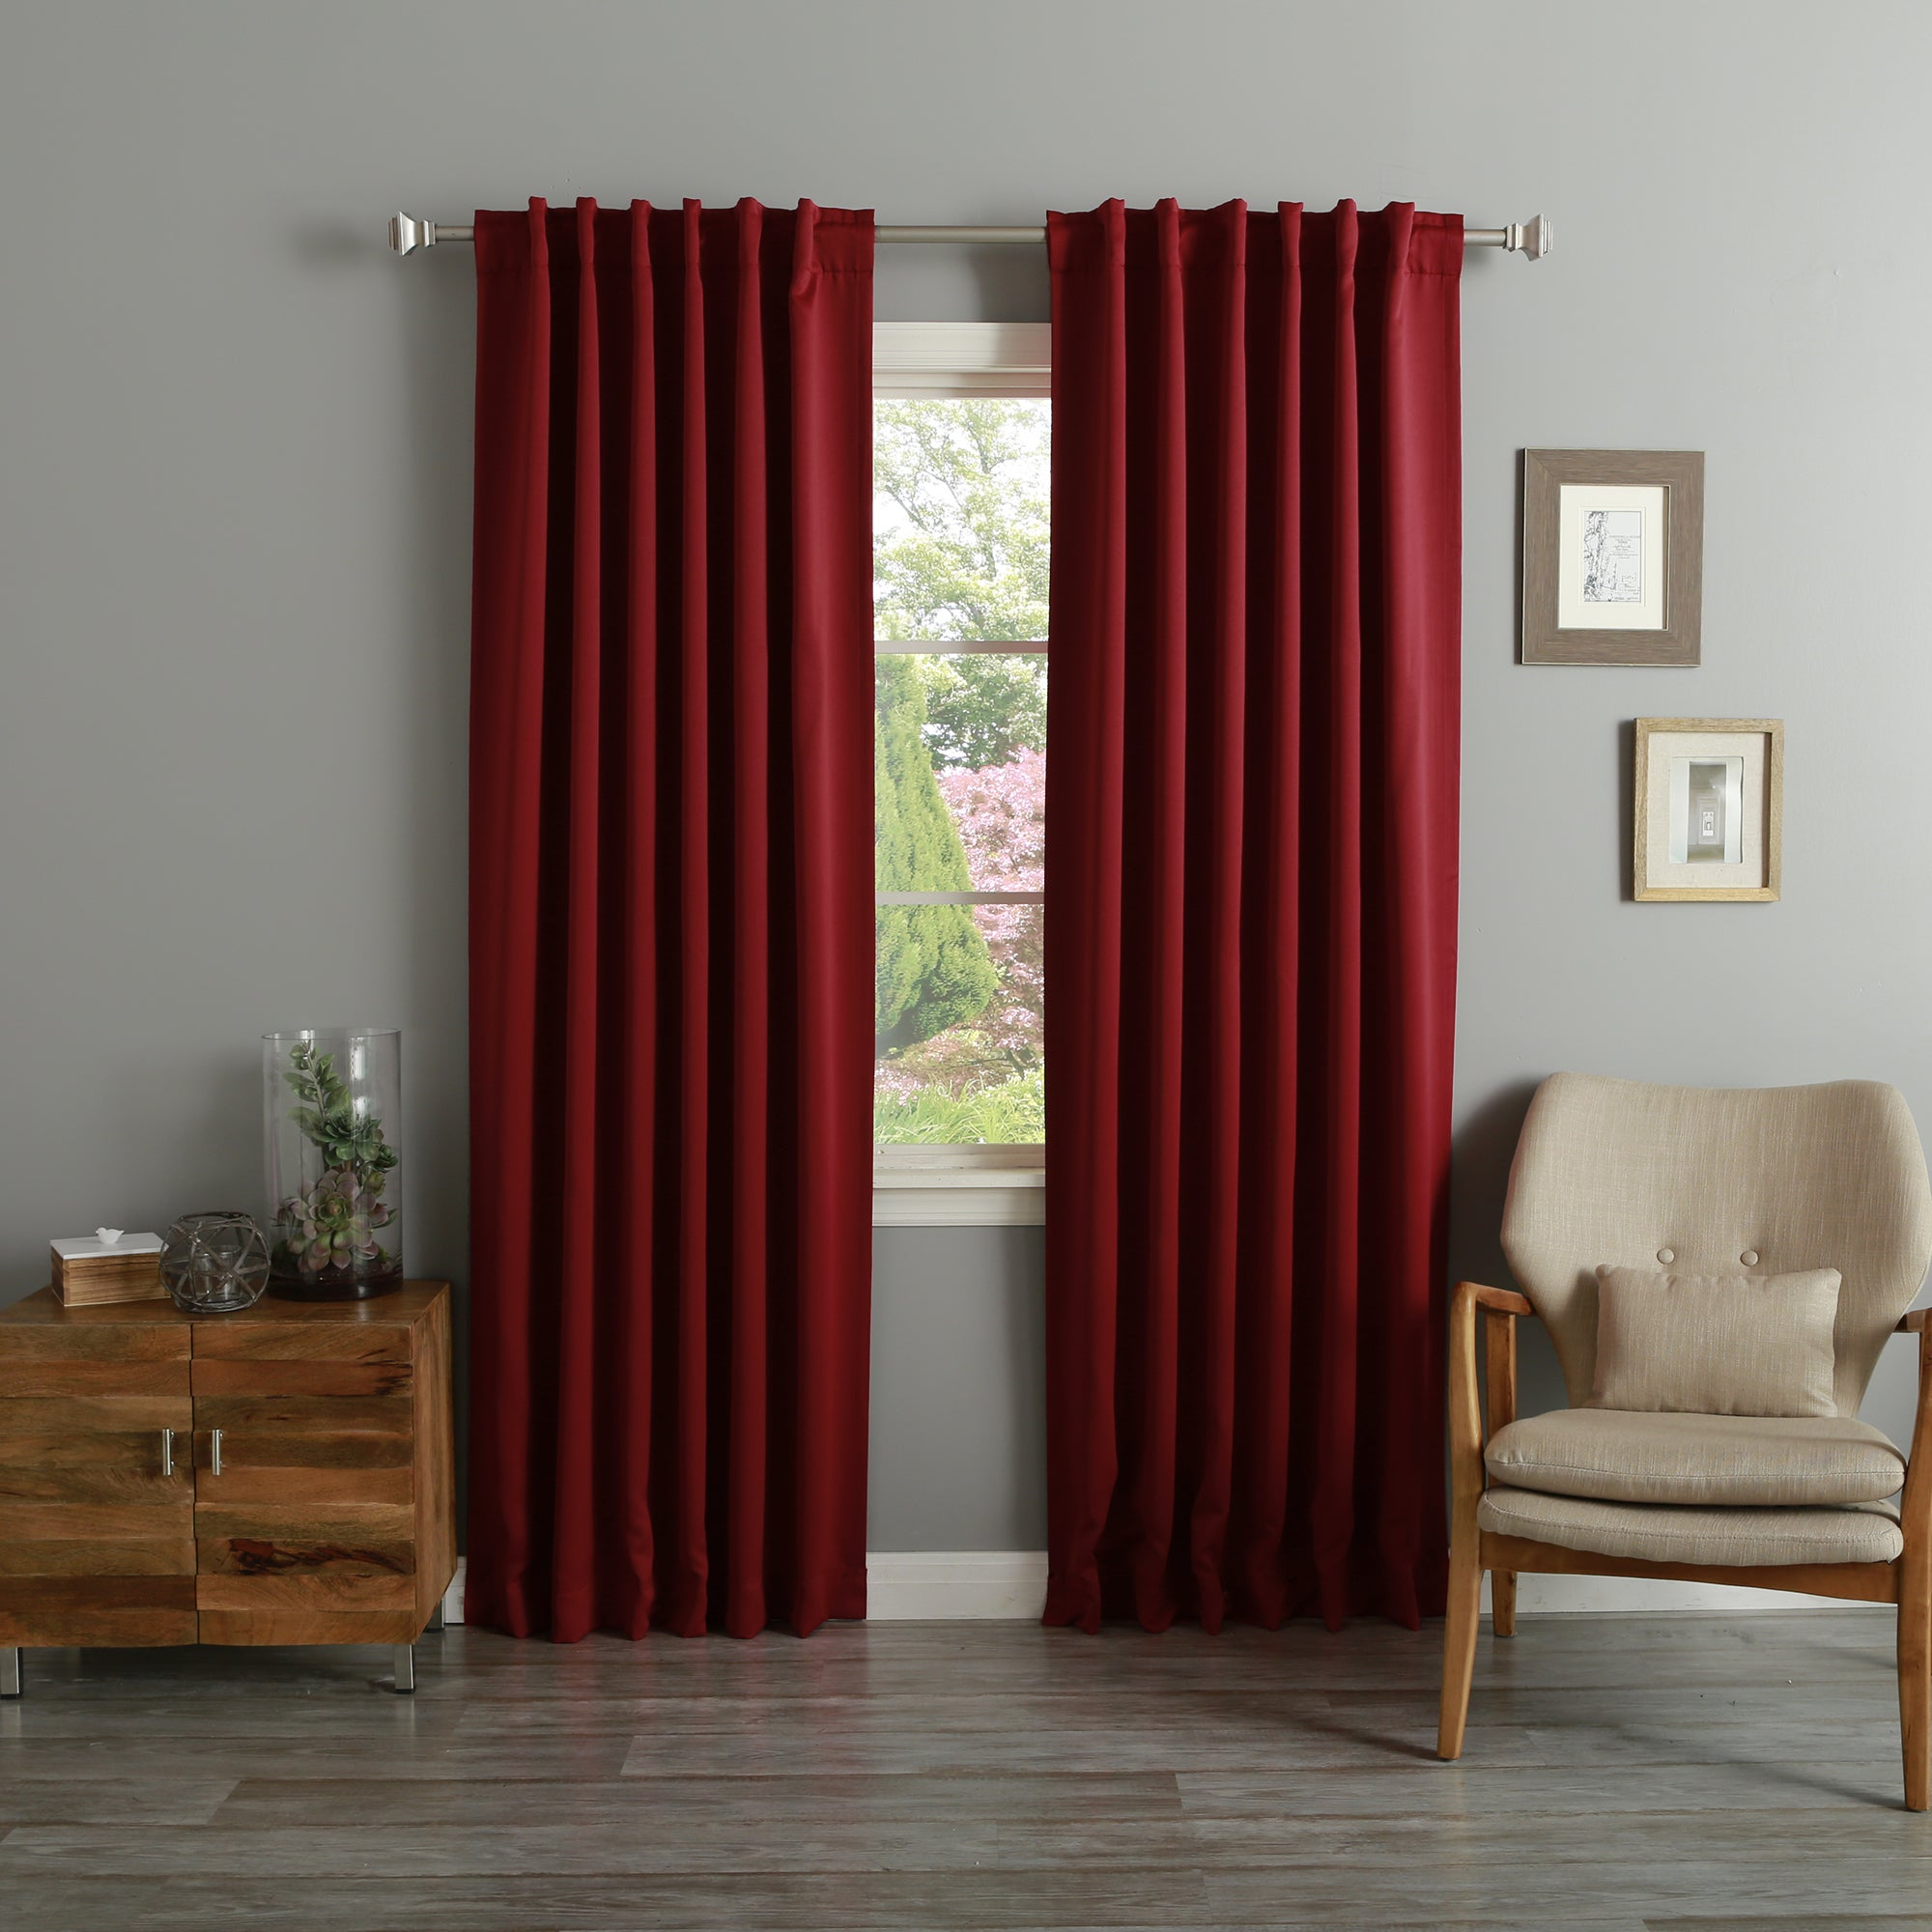 Aurora Home Thermal Rod Pocket 96 Inch Blackout Curtain Panel Pair 52 X